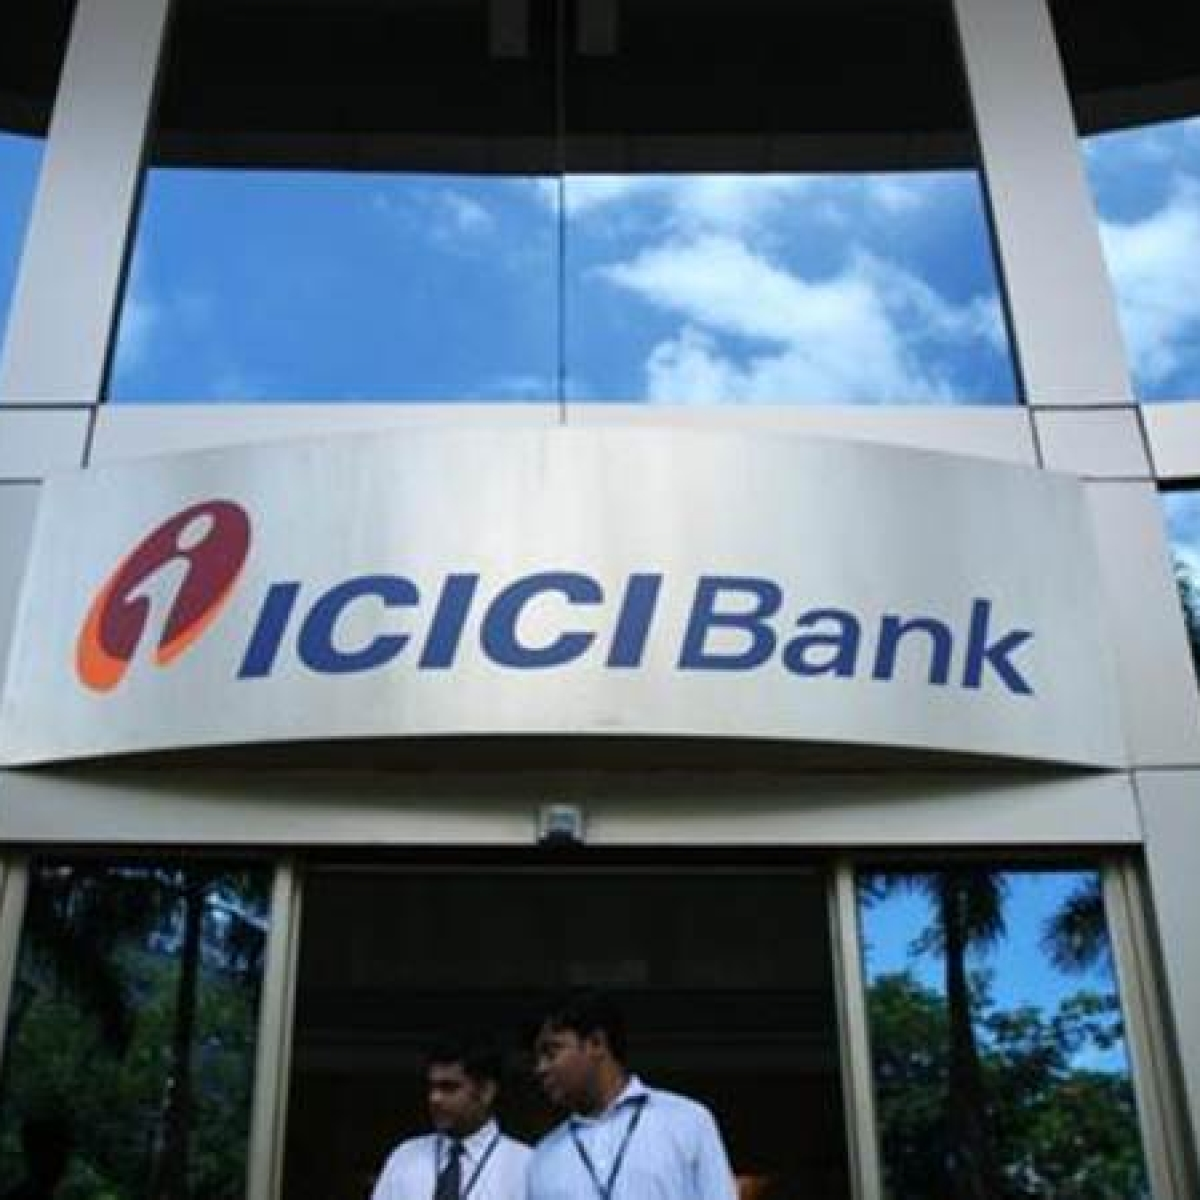 ICICI Bank to cut savings account rates by 25 bps